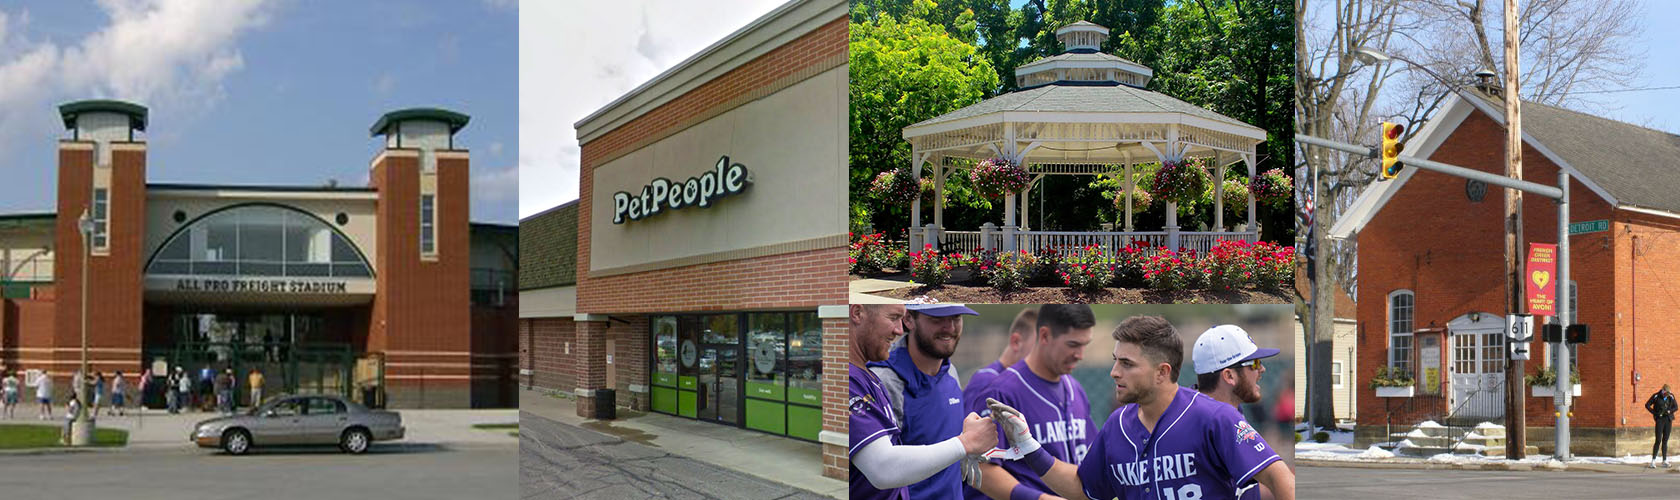 Collage of Pet People Store and town of Avon